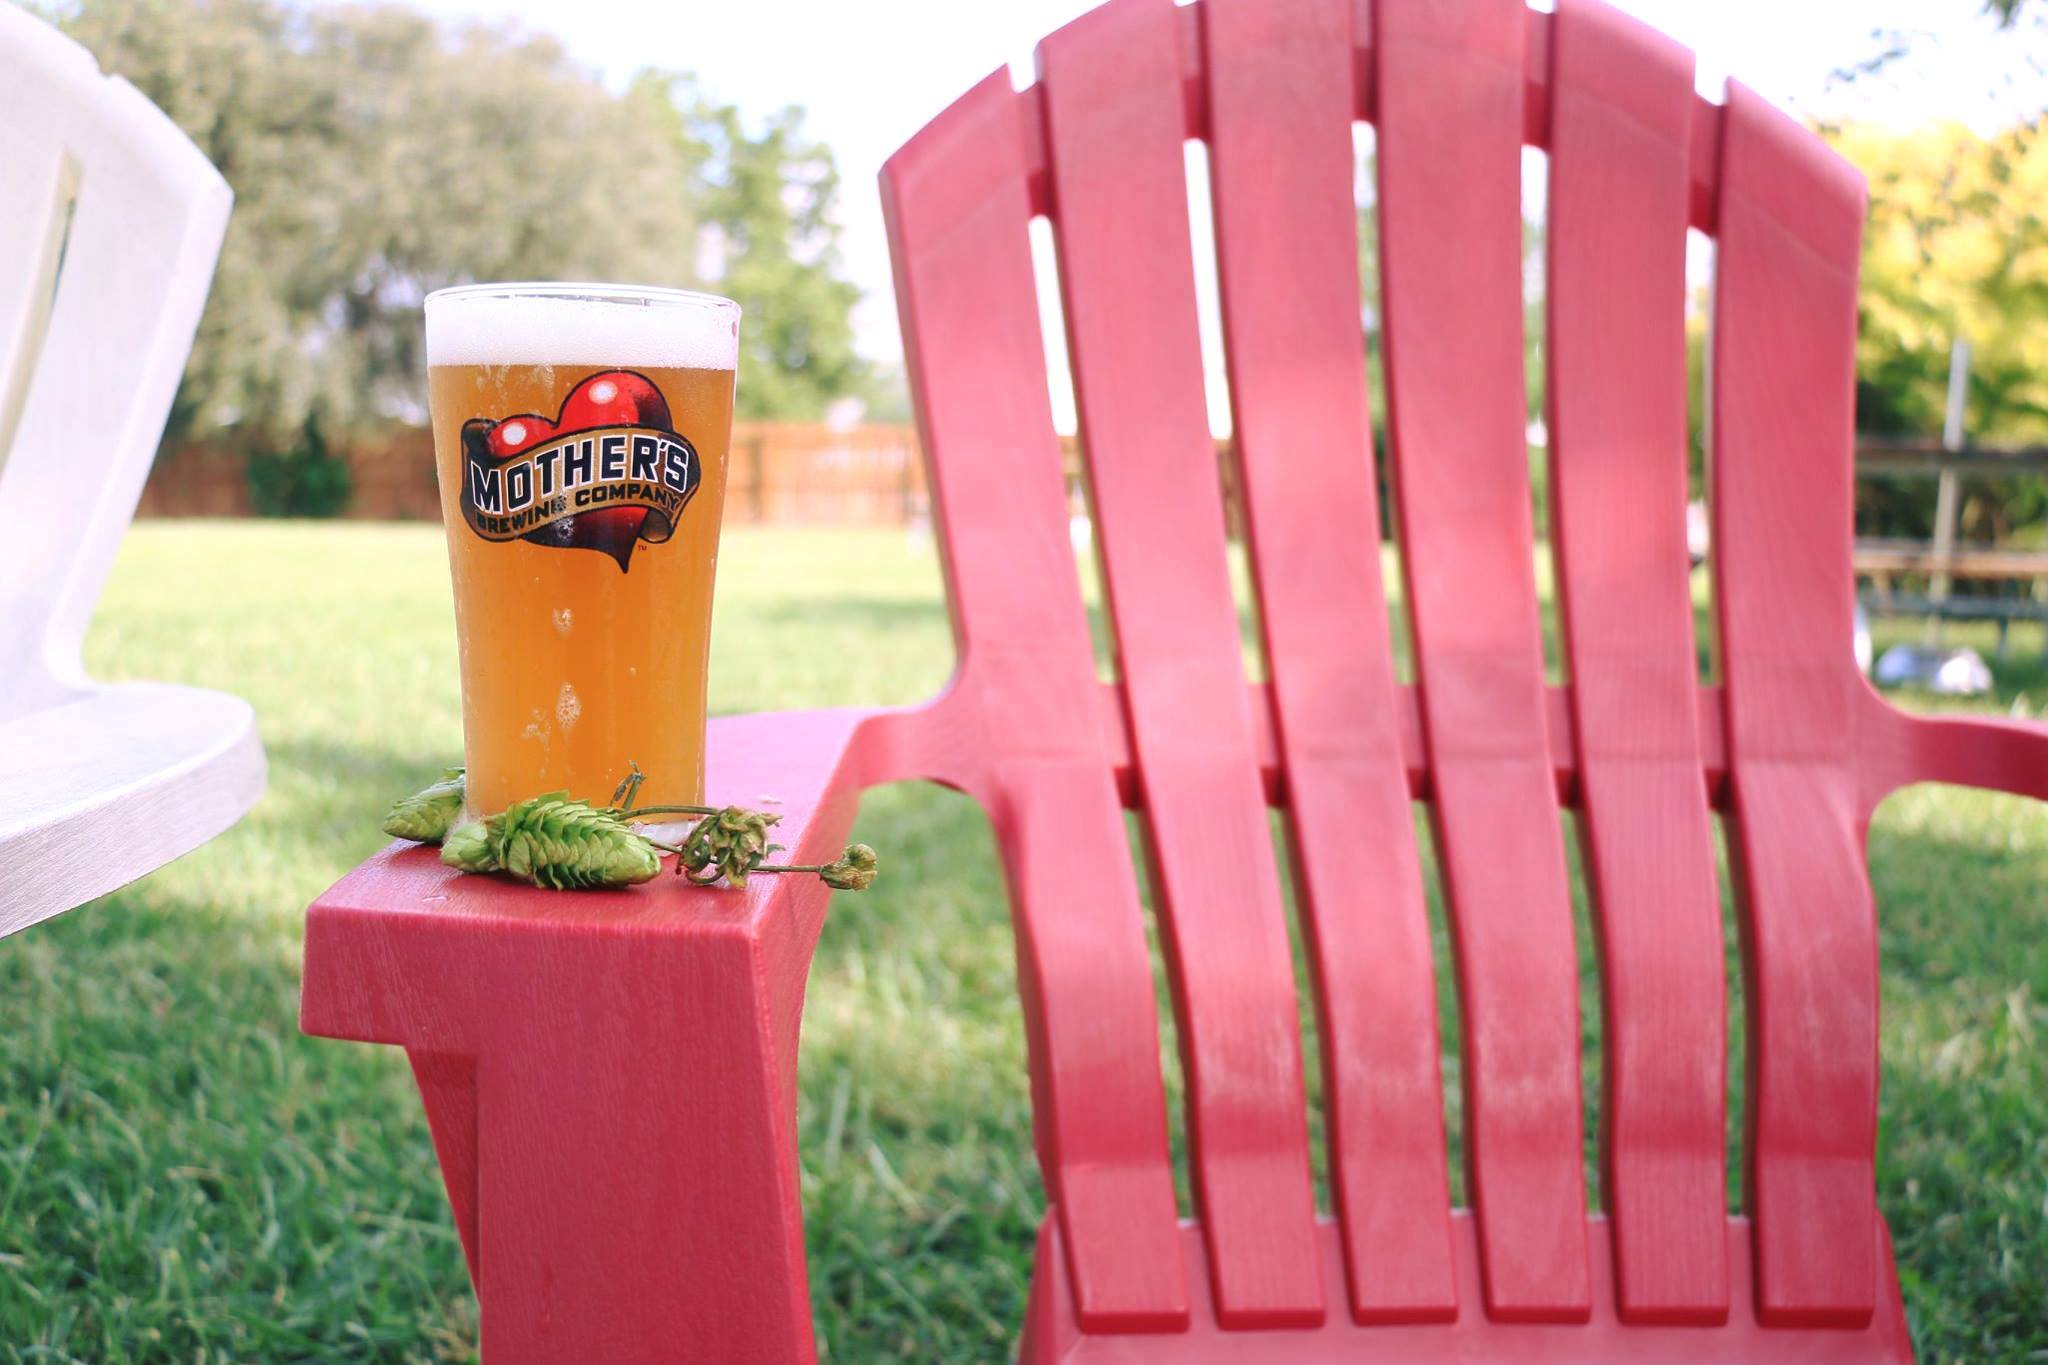 BEER AND WINE - MIGHTY FINE   Reward yourself with the tastes of finer living without the big city expense. Explore Springfield's diverse wineries, micro-breweries and distilleries.